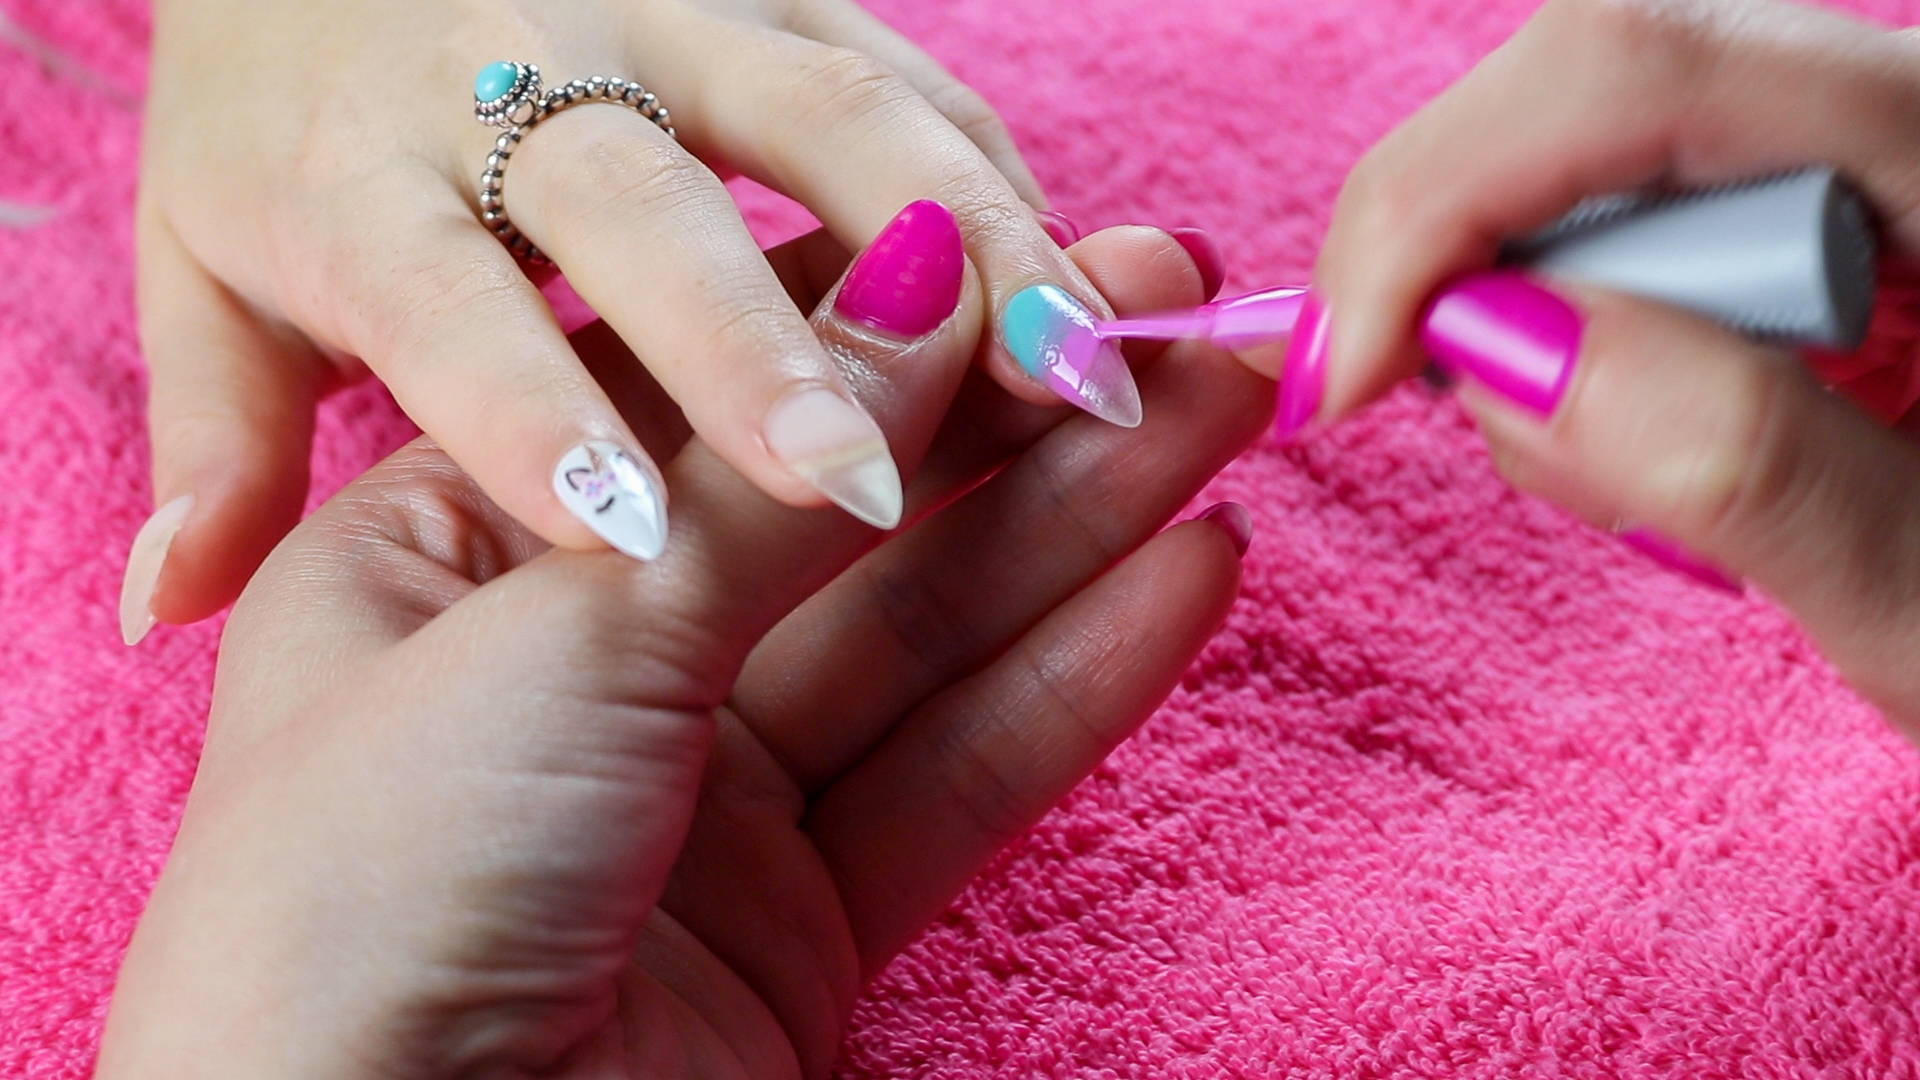 Unicorn nail art detail being sponged onto a nail to create a unicorn ombre nail design